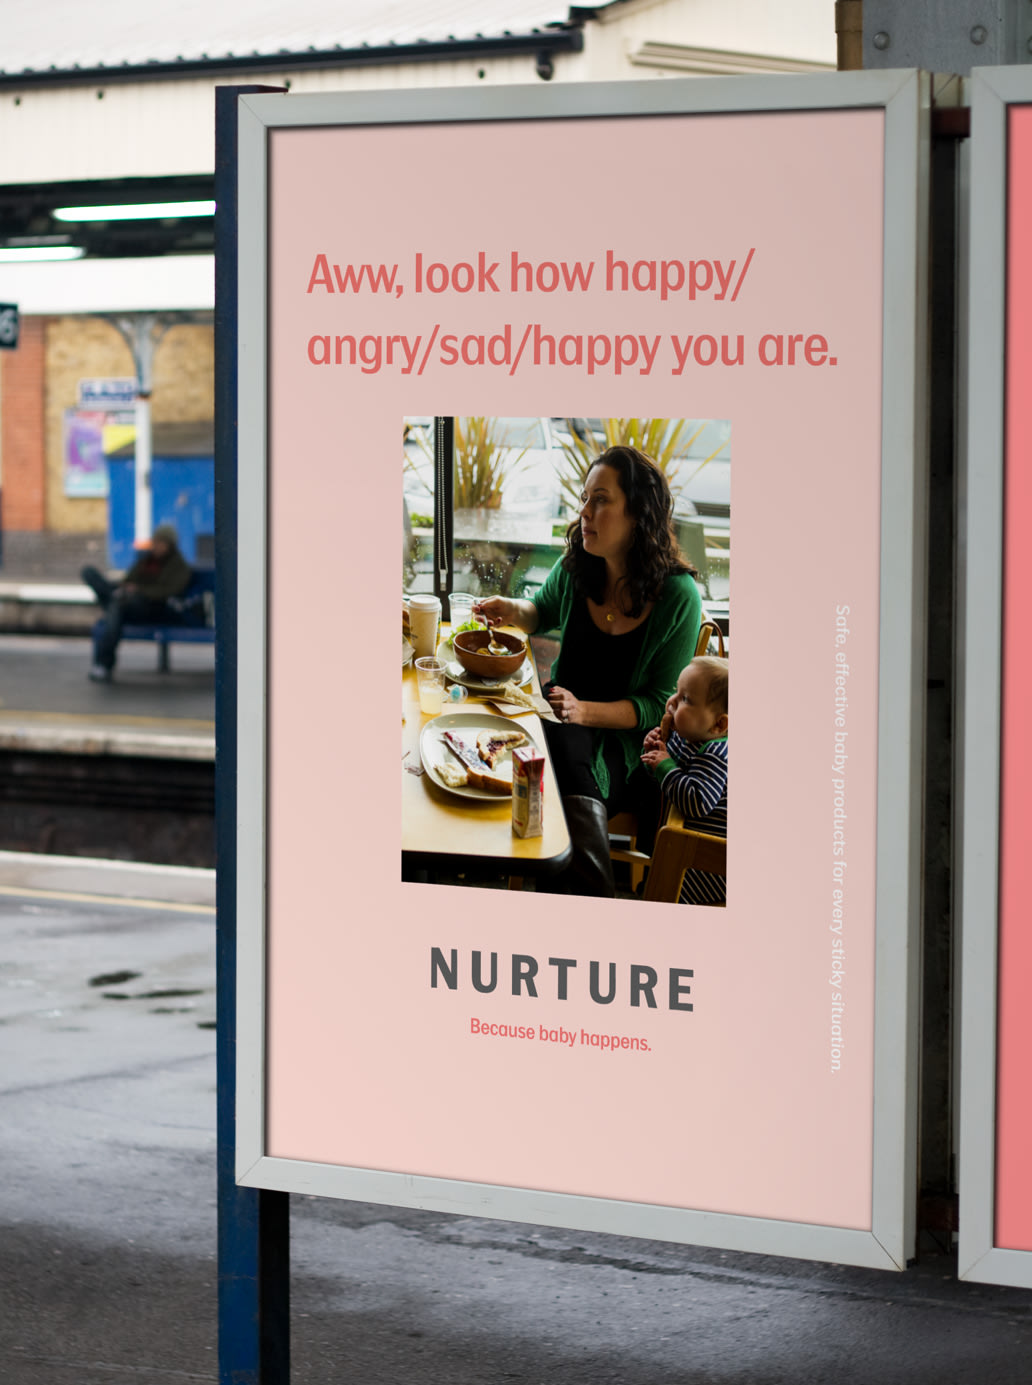 Nurture–because baby happens.